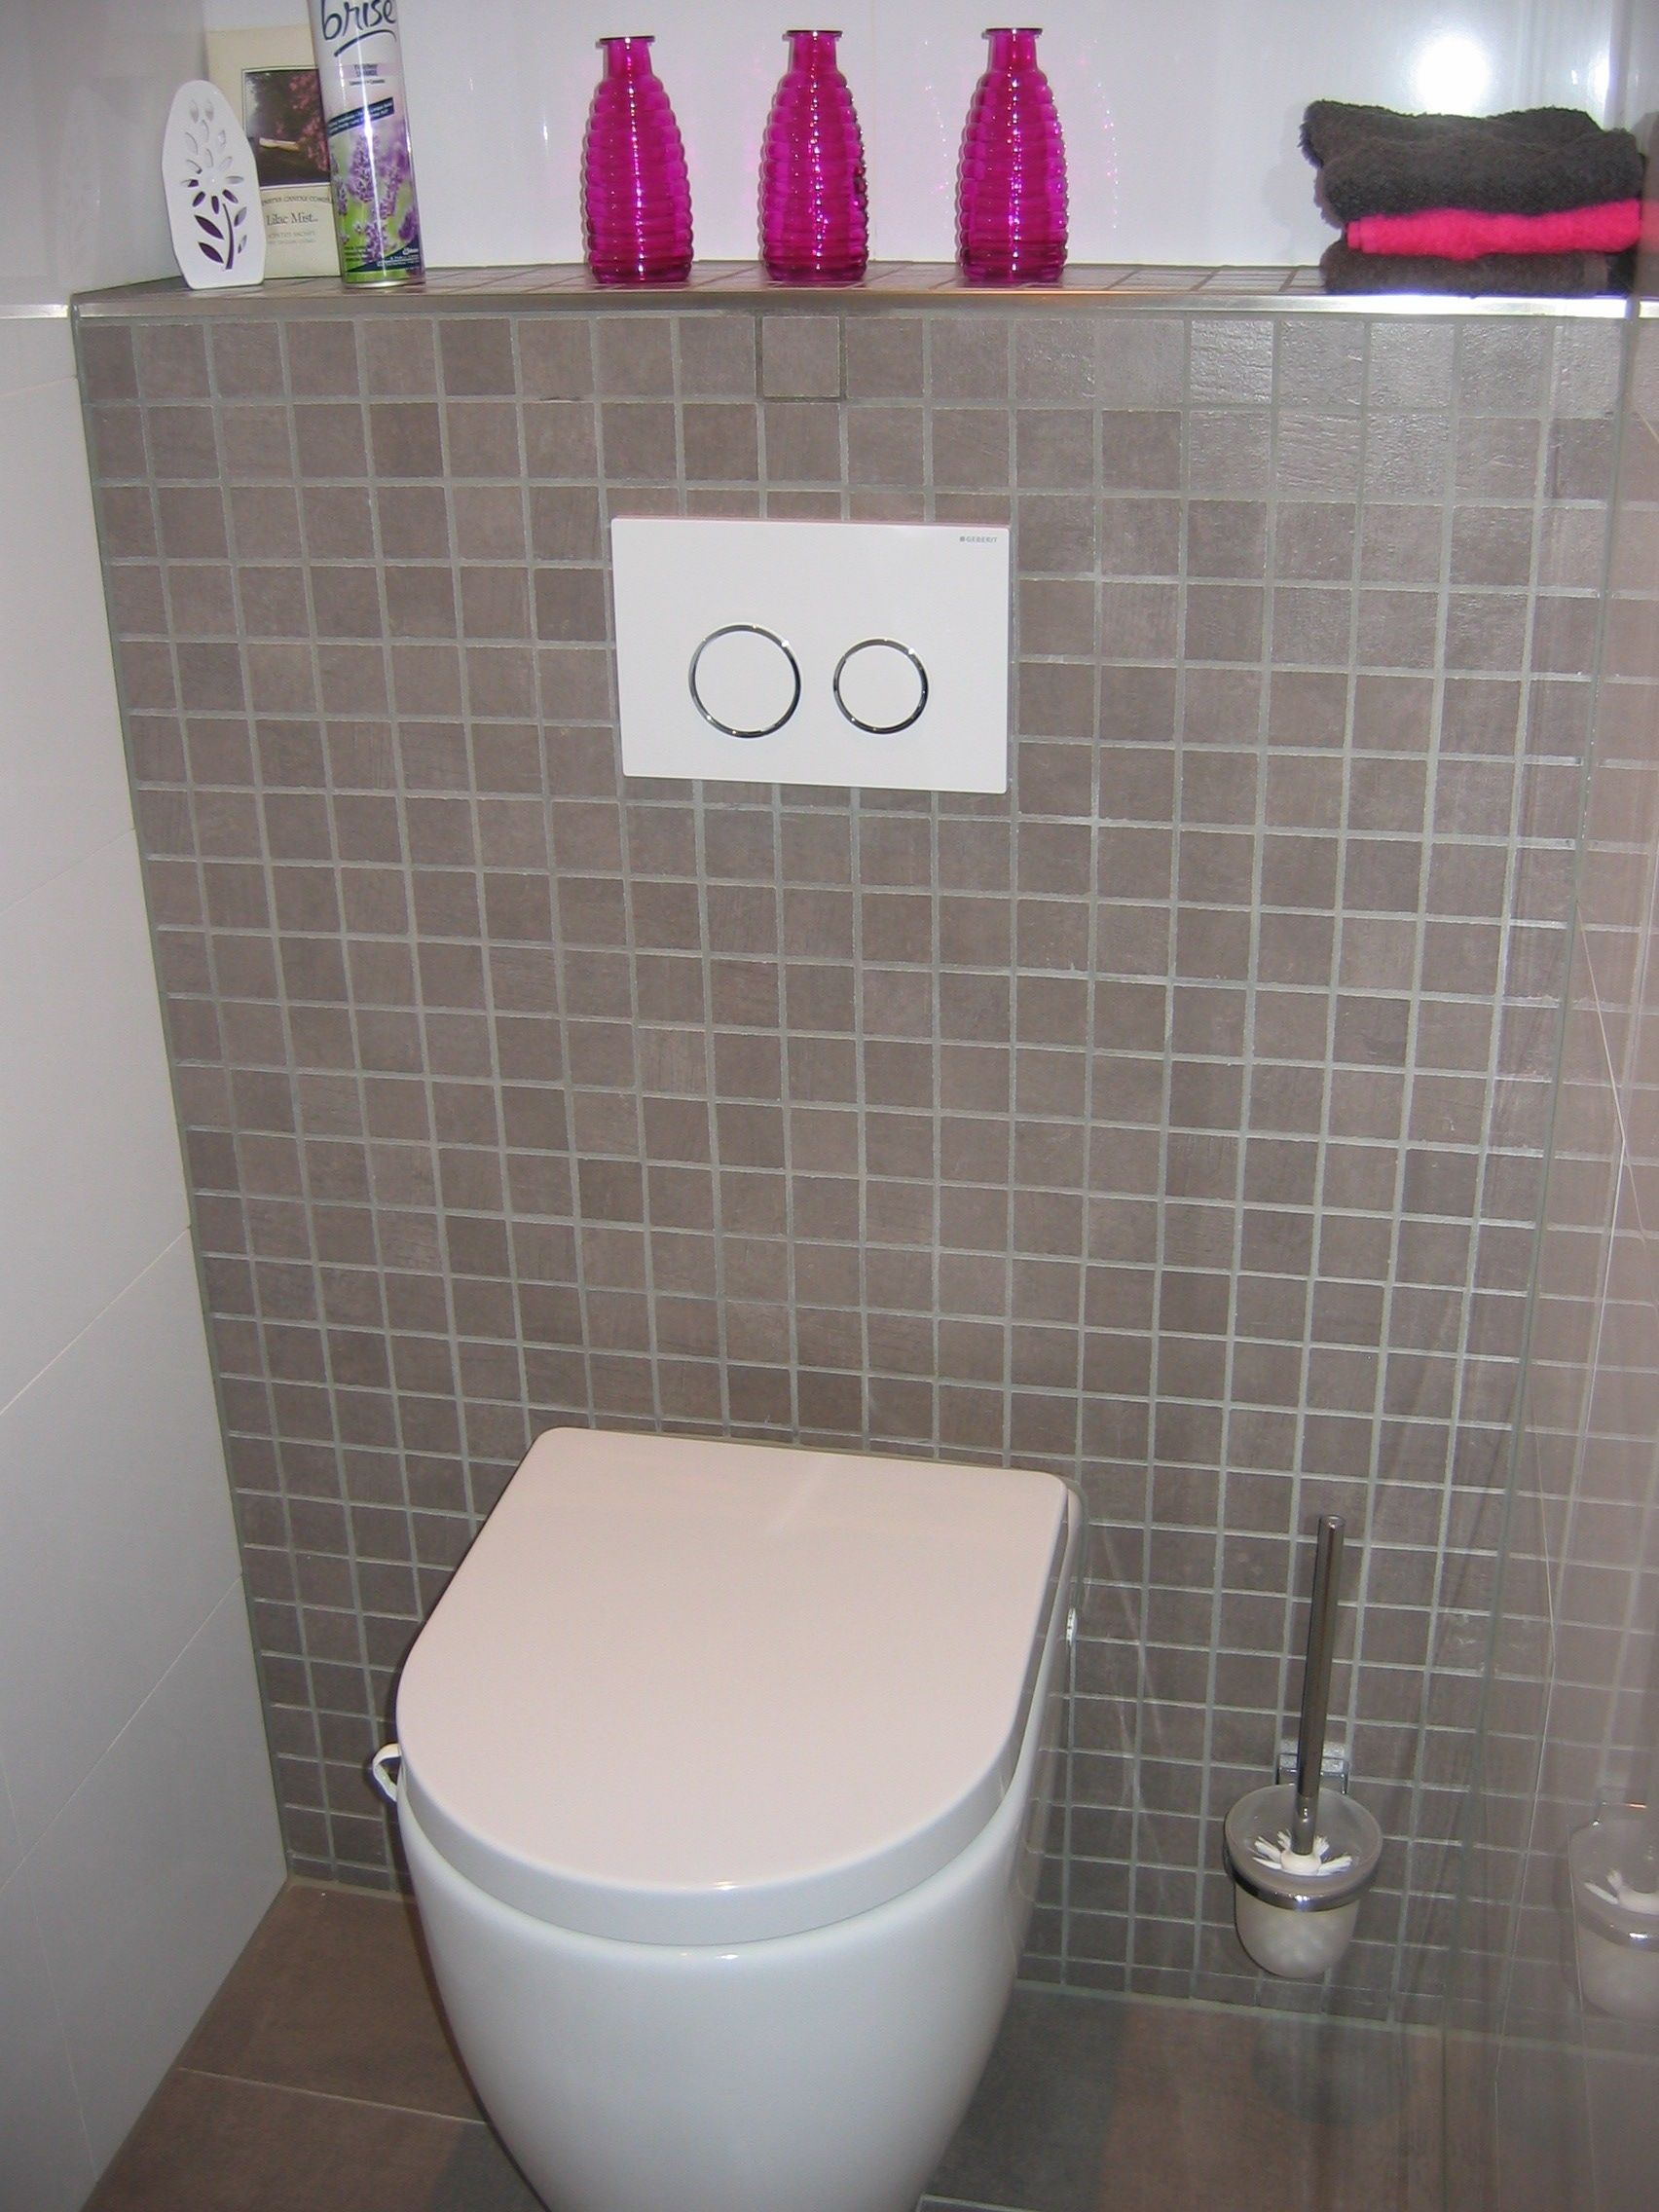 Toilets, google and search on pinterest